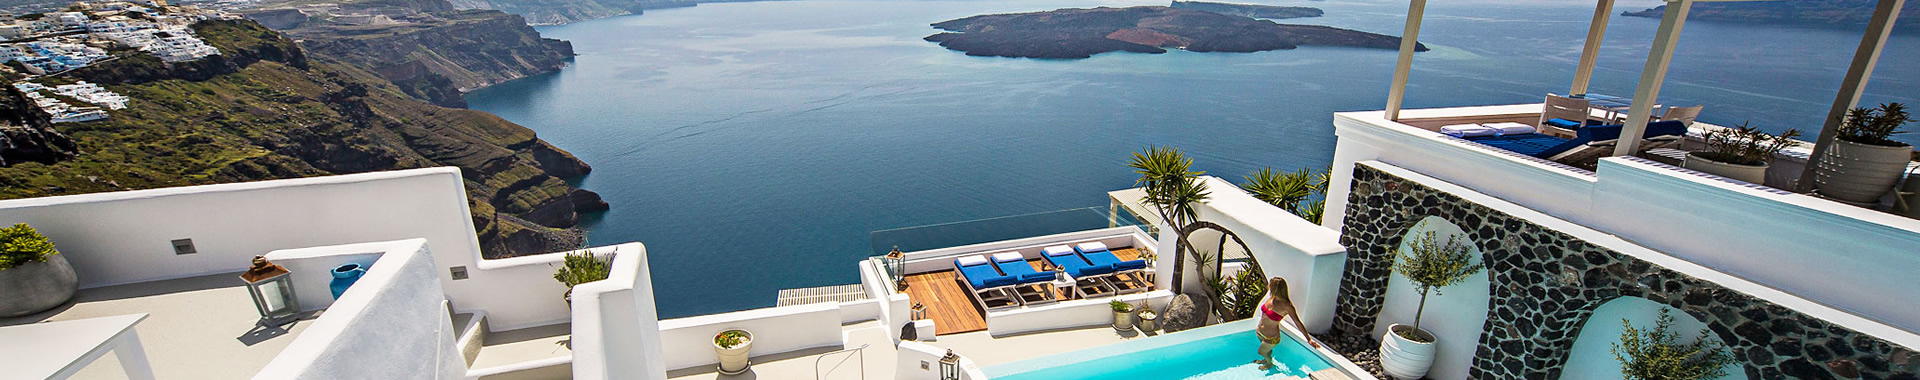 Hotels in Santorini island, Greece